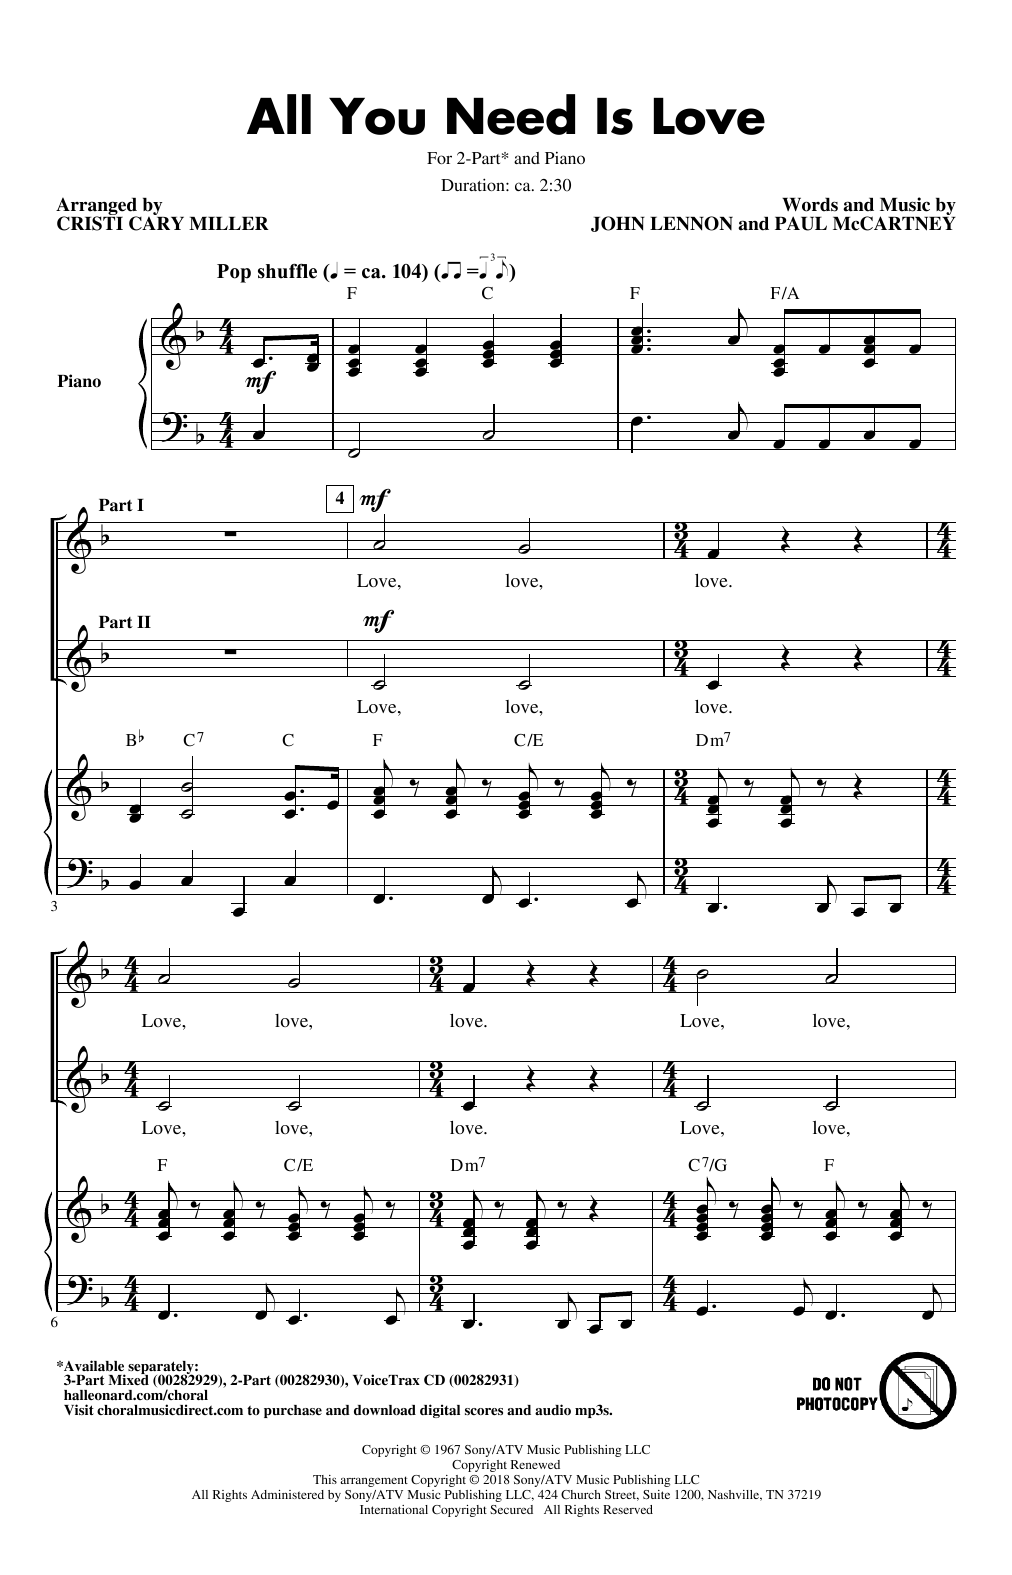 The Beatles All You Need Is Love arr. Cristi Cari Miller Sheet Music  Notes, Chords   Download Printable 15 Part Mixed Choir PDF Score   SKU  4015881